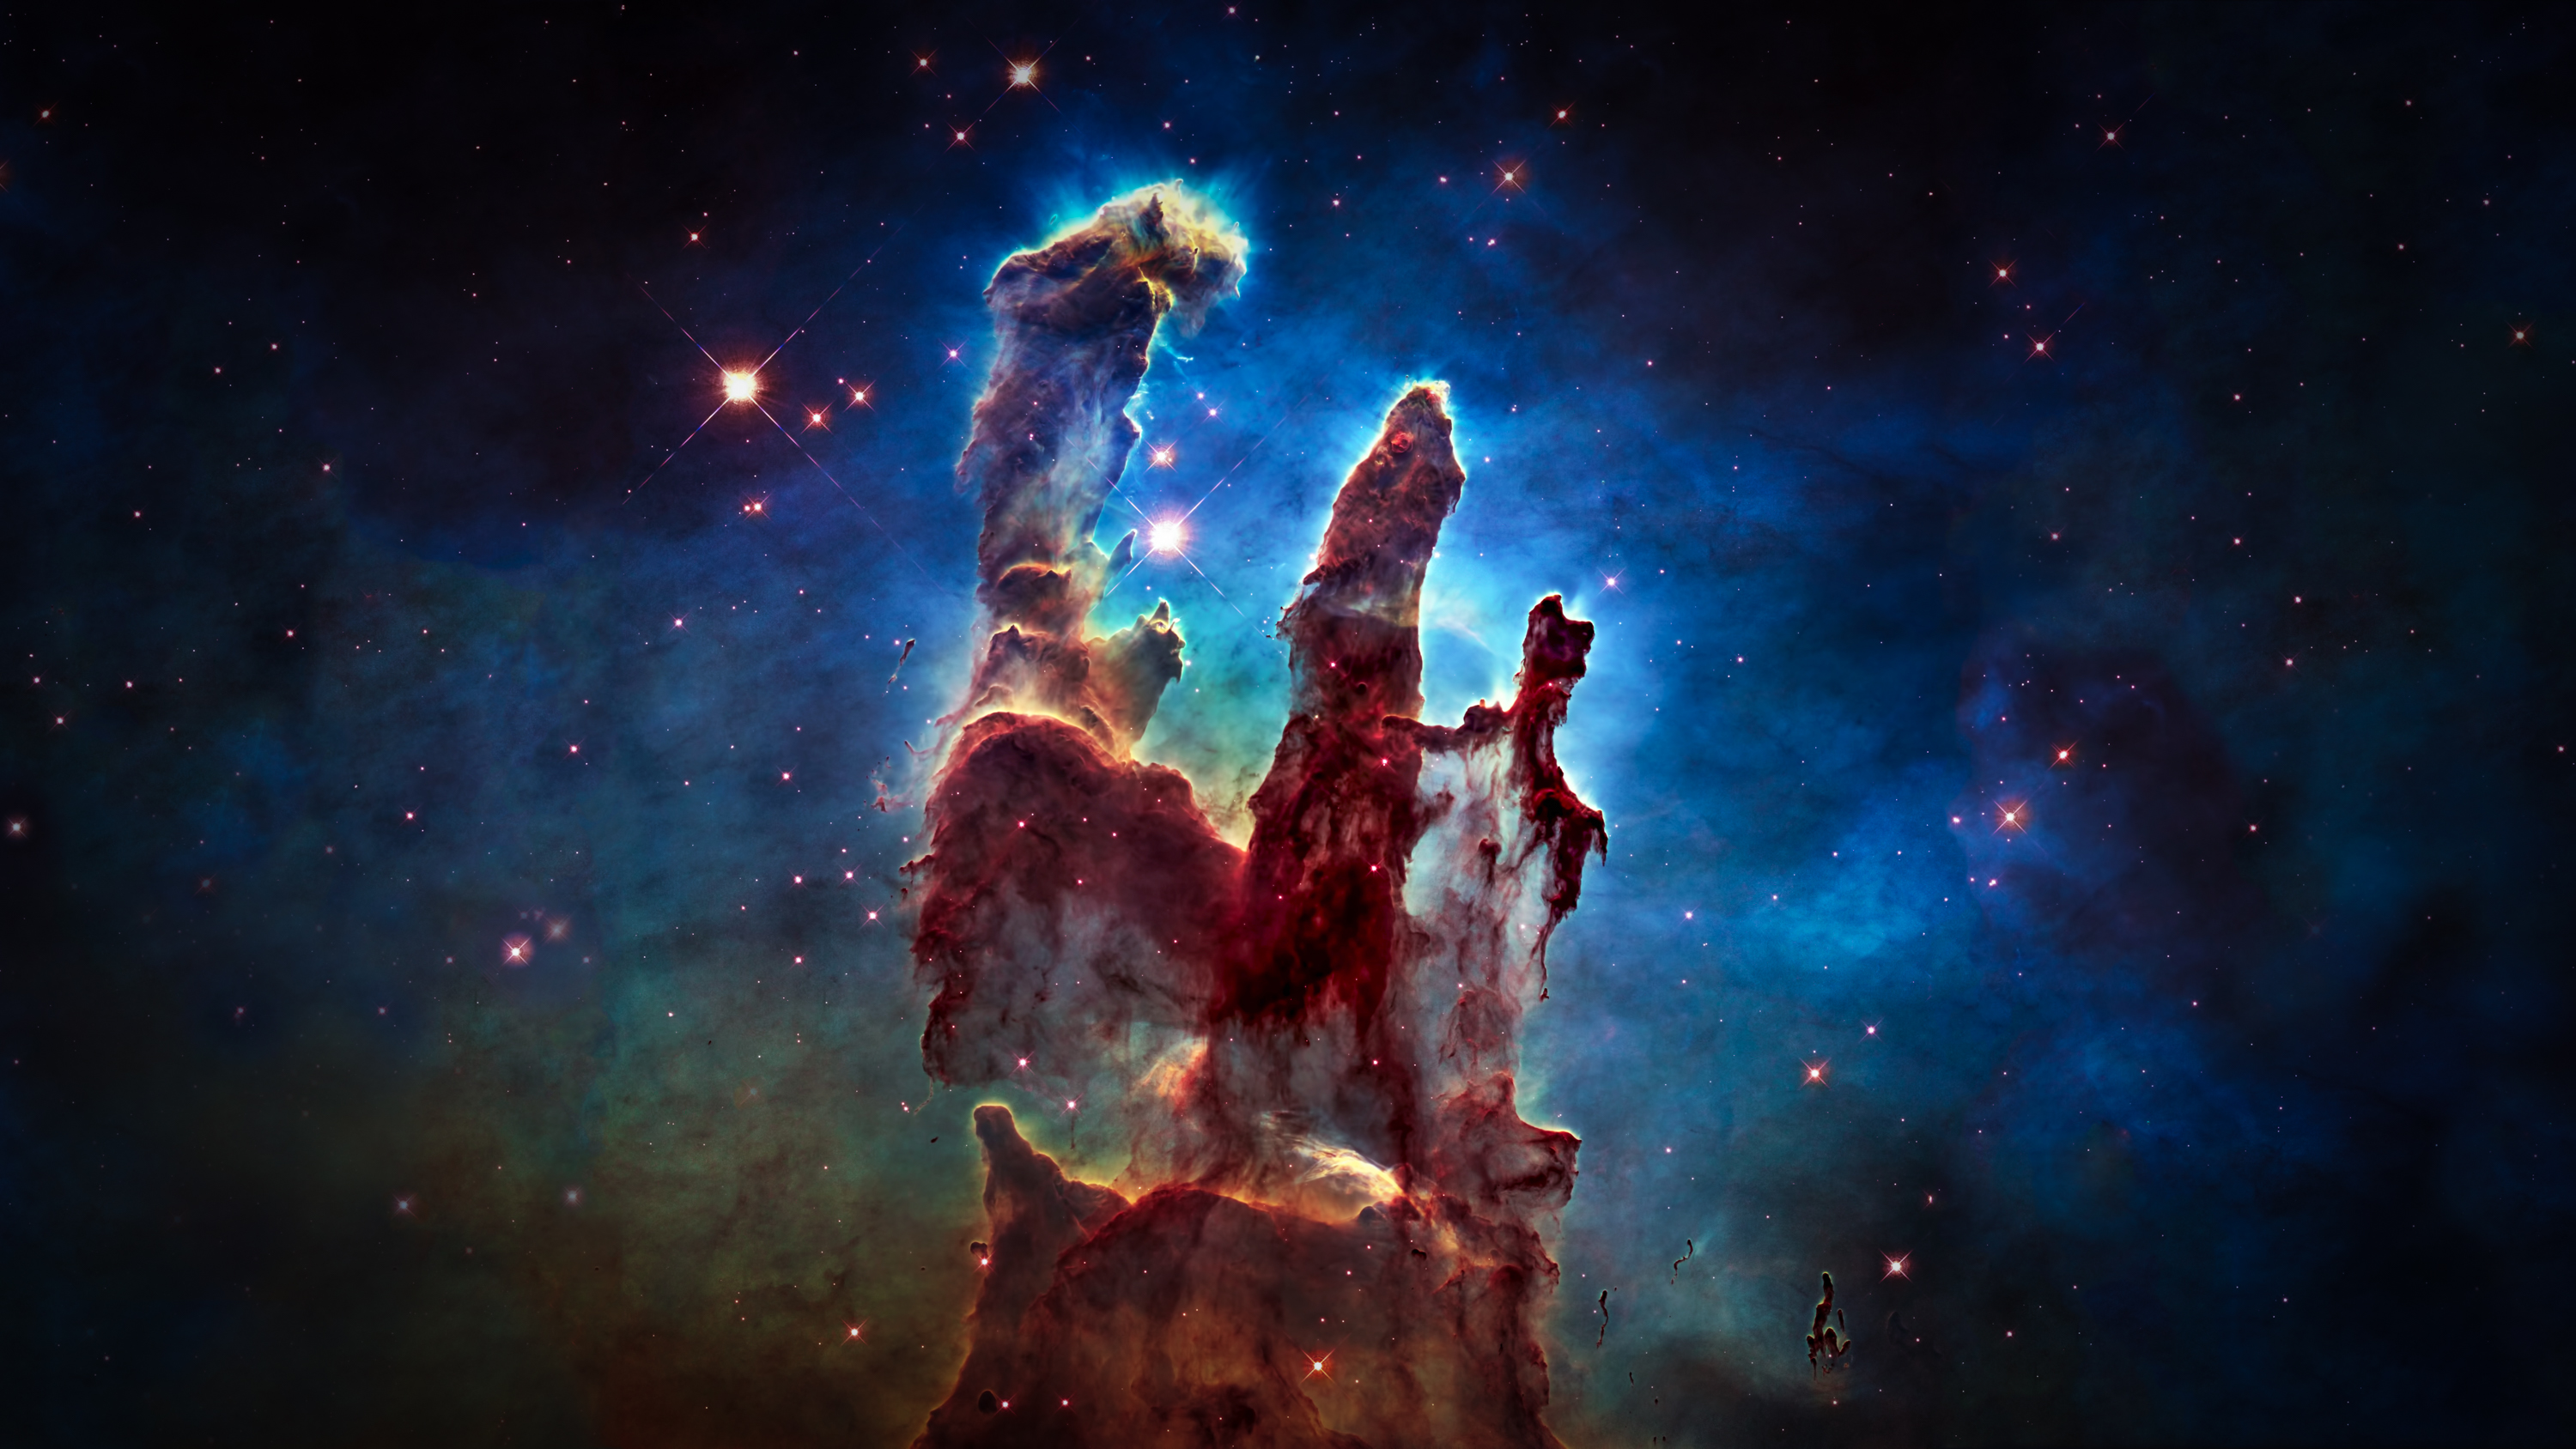 hubble backgrounds pillars of creation - photo #12